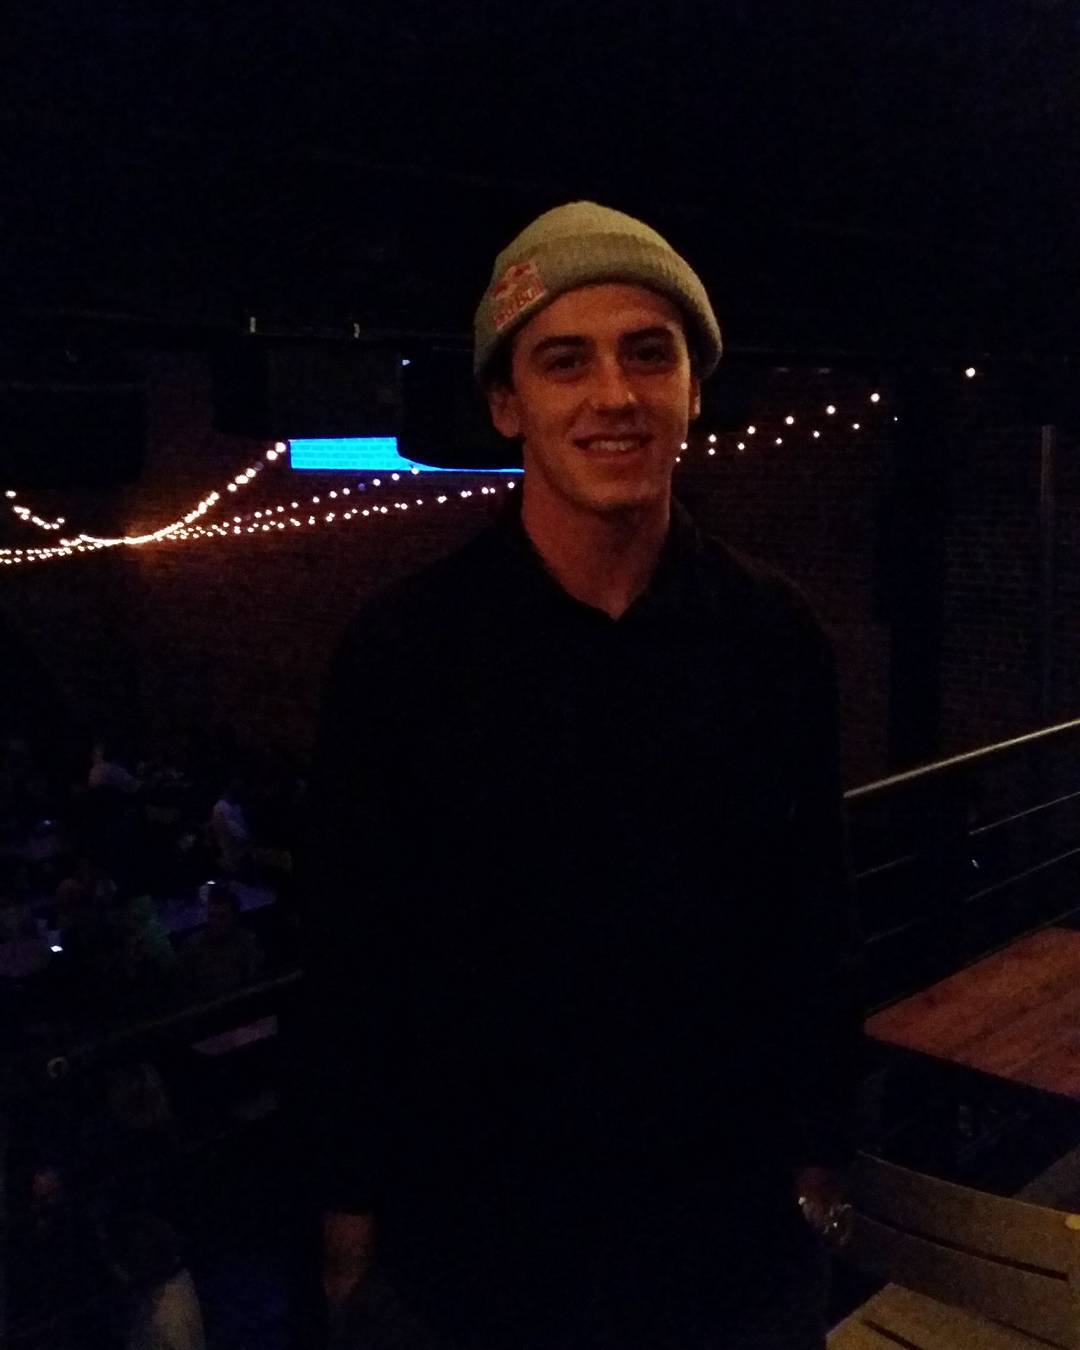 Five-time ❌ Games gold medalist @MarkMcMorris has arrived at NYC's Freehold Brooklyn to premiere #InMotionFilm!